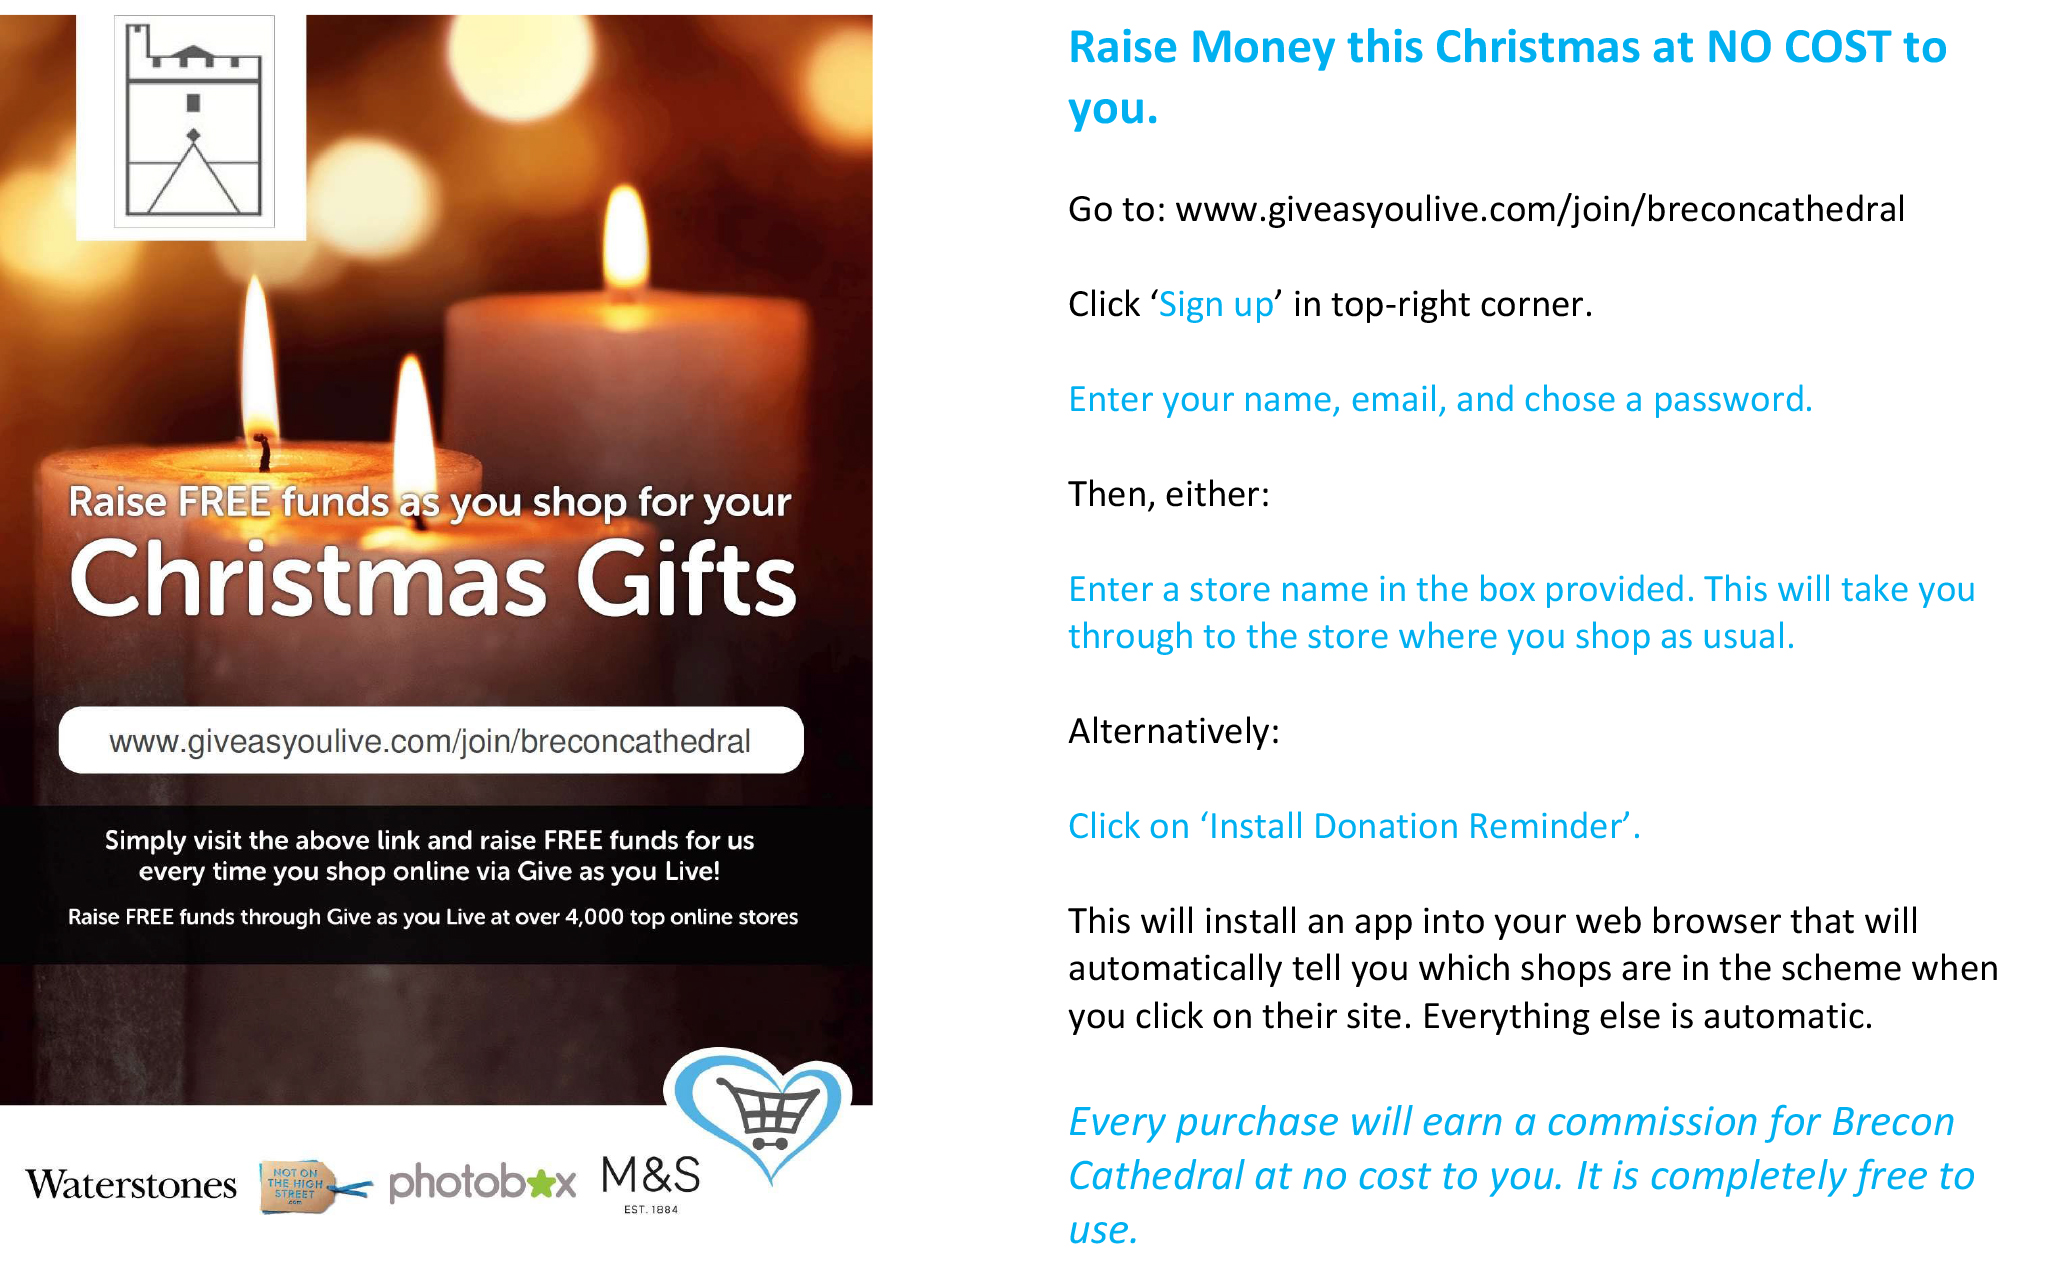 Raise money this Christmas for Brecon Cathedral with no cost to you ...